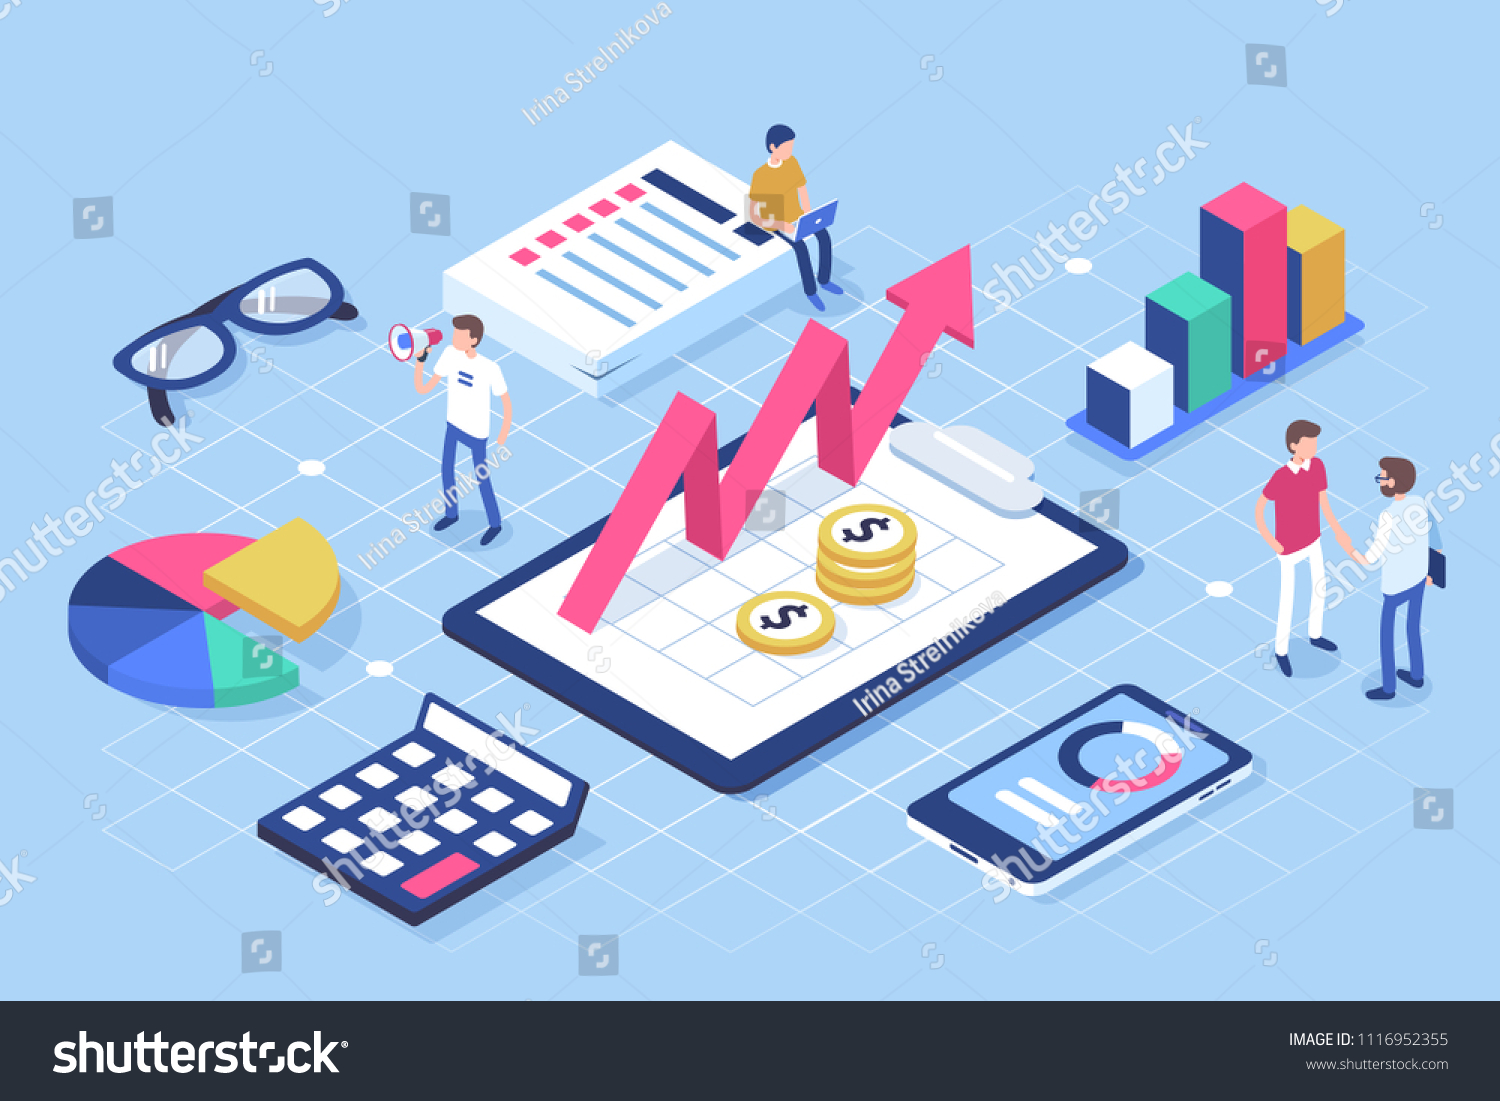 Financial administration concept with characters. Can use for web banner, infographics, hero images. Flat isometric vector illustration isolated on white background.